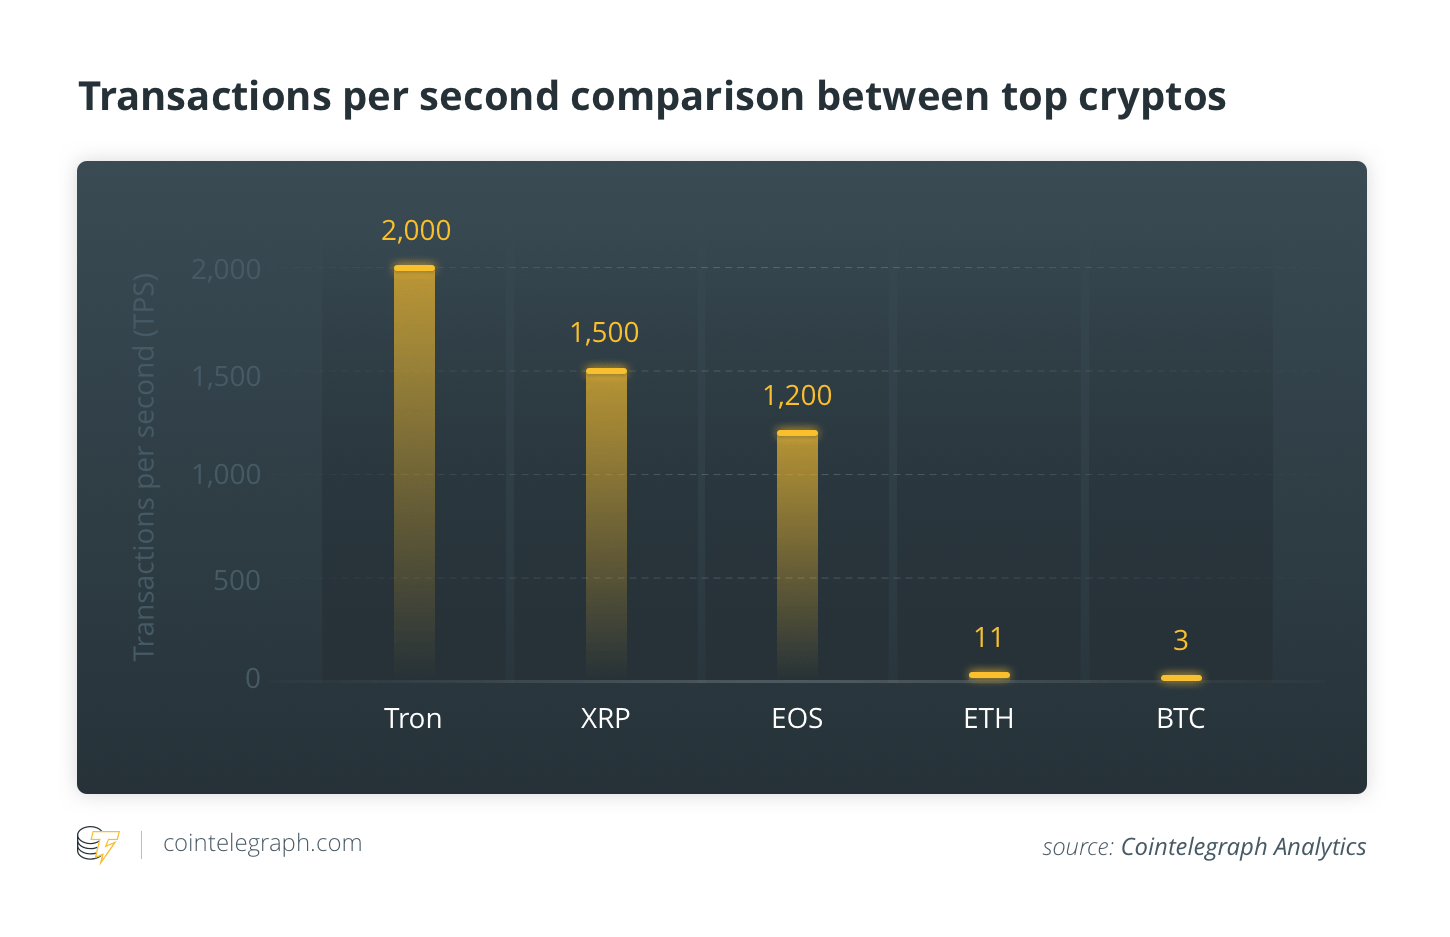 Transactions per second comparison between top cryptos